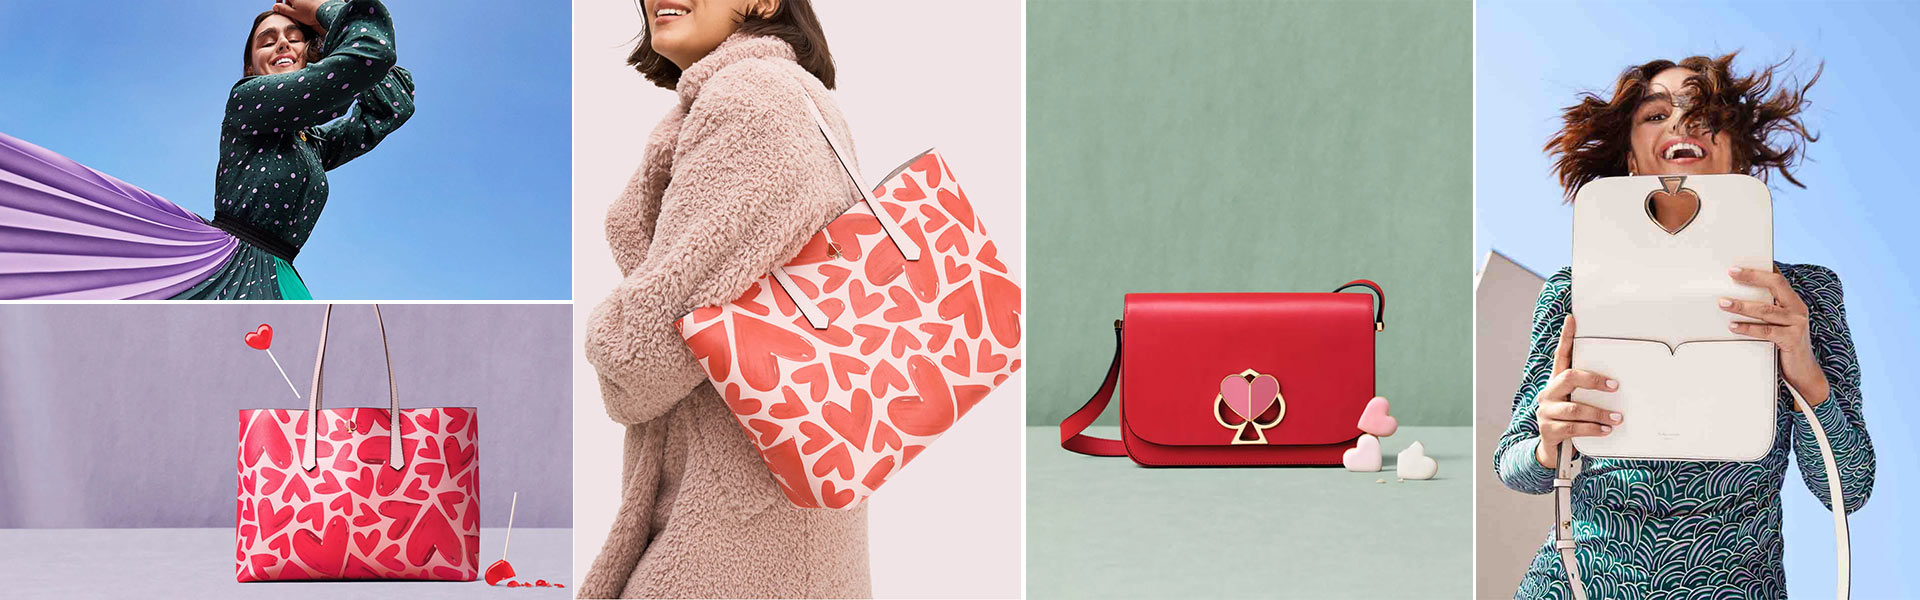 Kate Spade New York See and shop our new collection. Discover bags, jewelry and dresses in spades. Free shipping and returns to all 50 states.